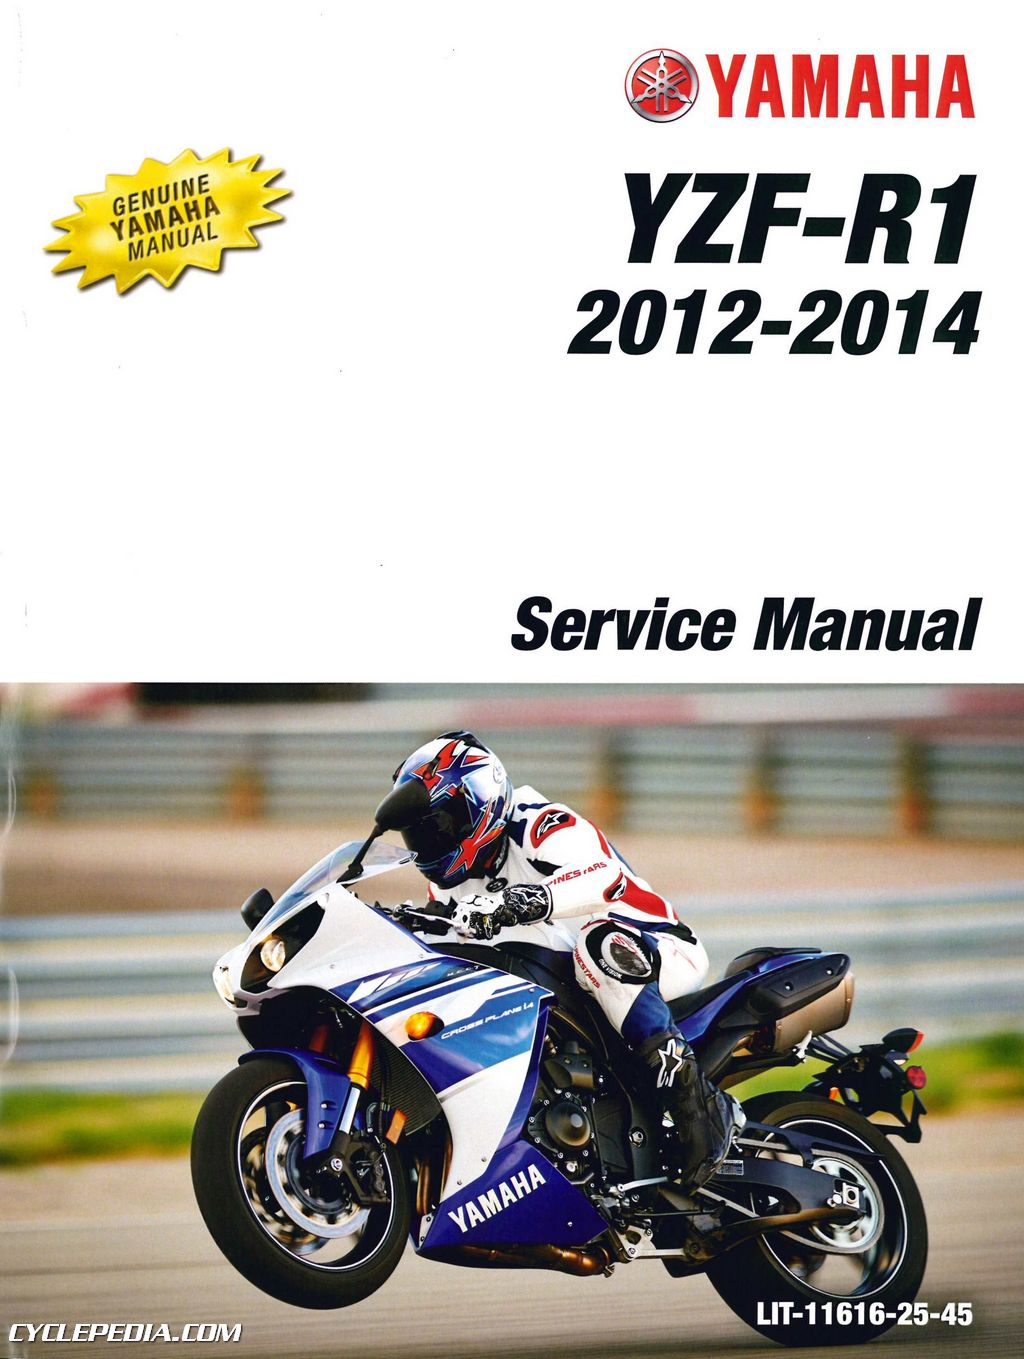 Yamaha R1 Manual Quick Start Guide Of Wiring Diagram Electrical Yzf Motorcycle 2012 2014 Yzfr1b 1000cc Service Rh Repairmanual Com 2009